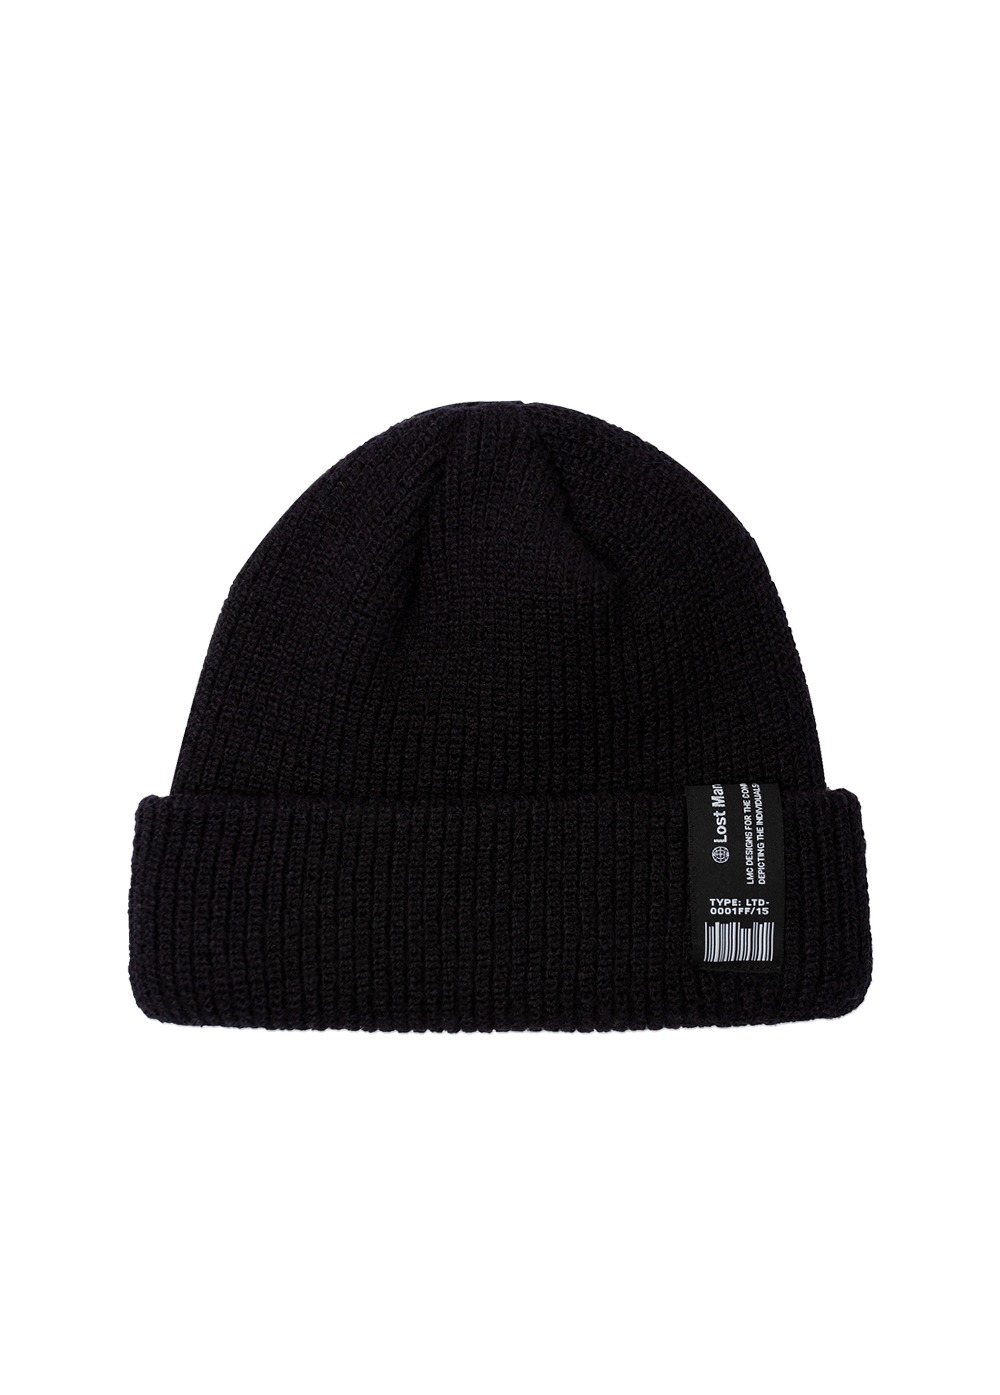 LMC LABEL SHORT BEANIE black